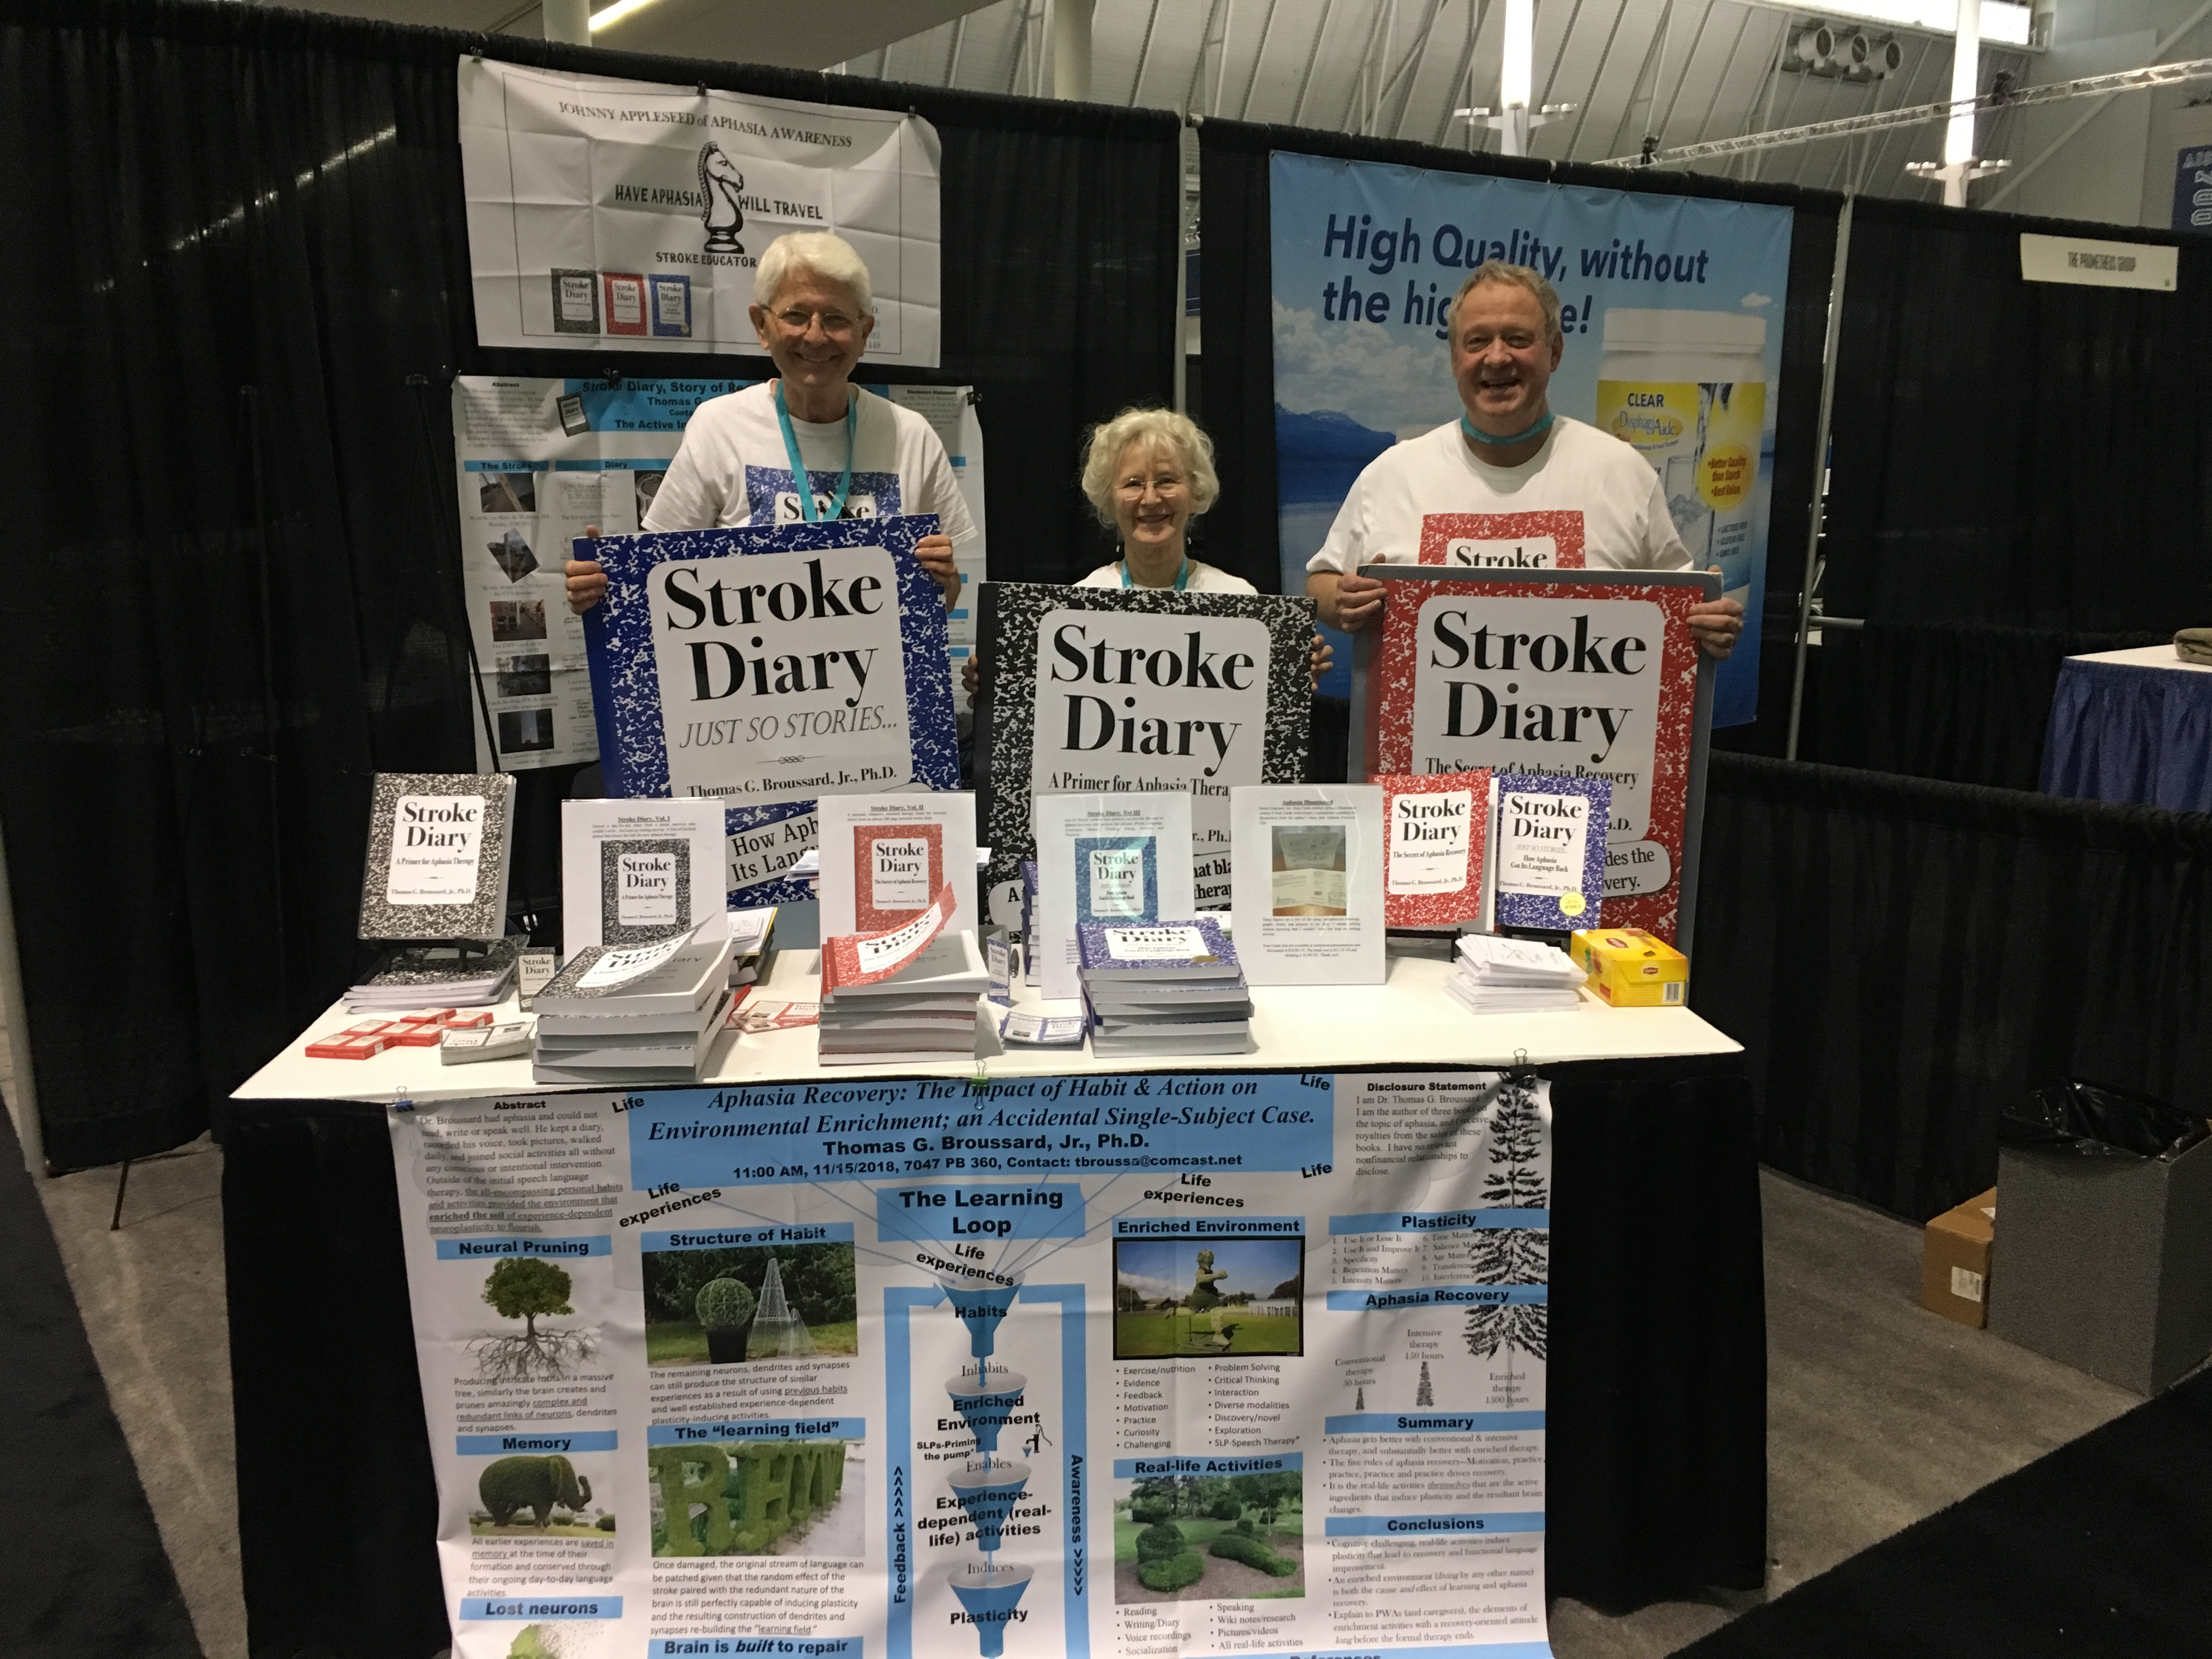 Conference In Boston Wednesday November >> Boston Ma Booth 570 Stroke Educator Inc 2018 Asha Annual